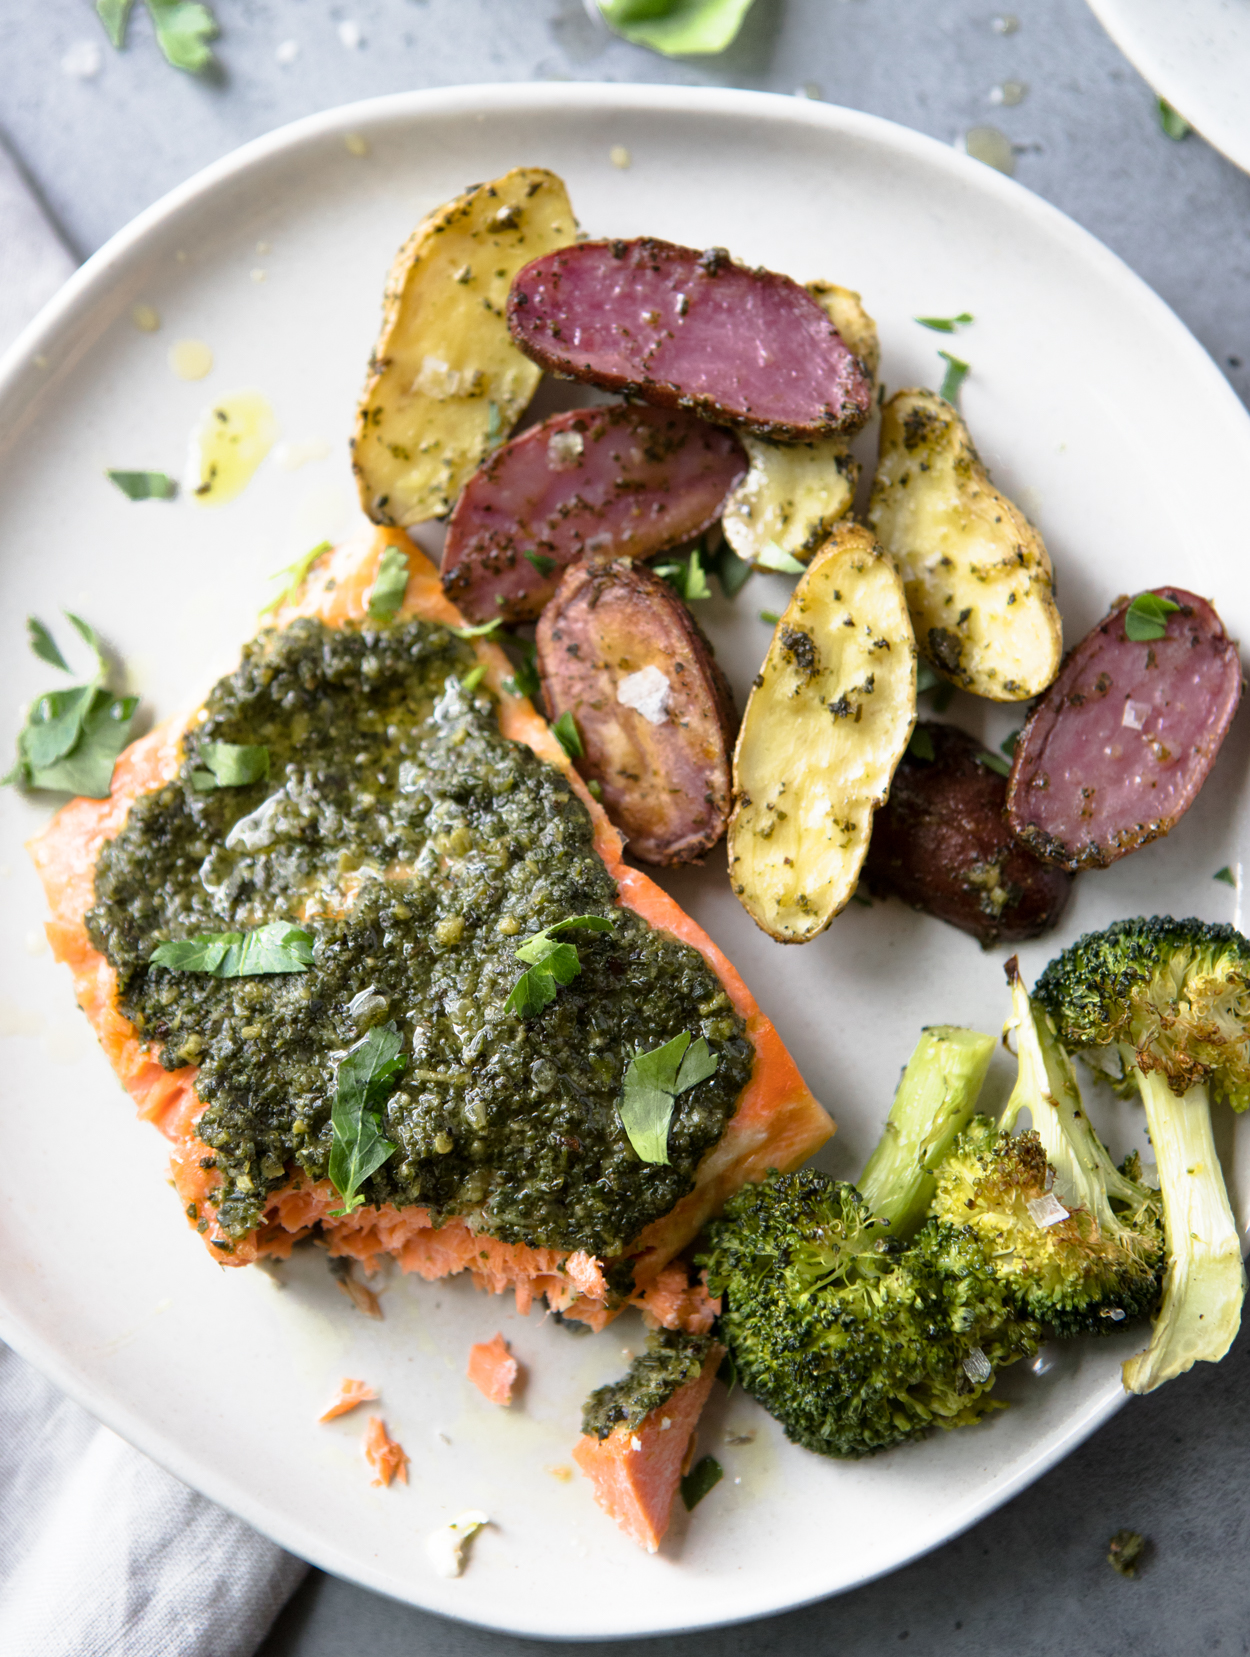 baked salmon with pesto, potatoes and broccoli on a white round plate